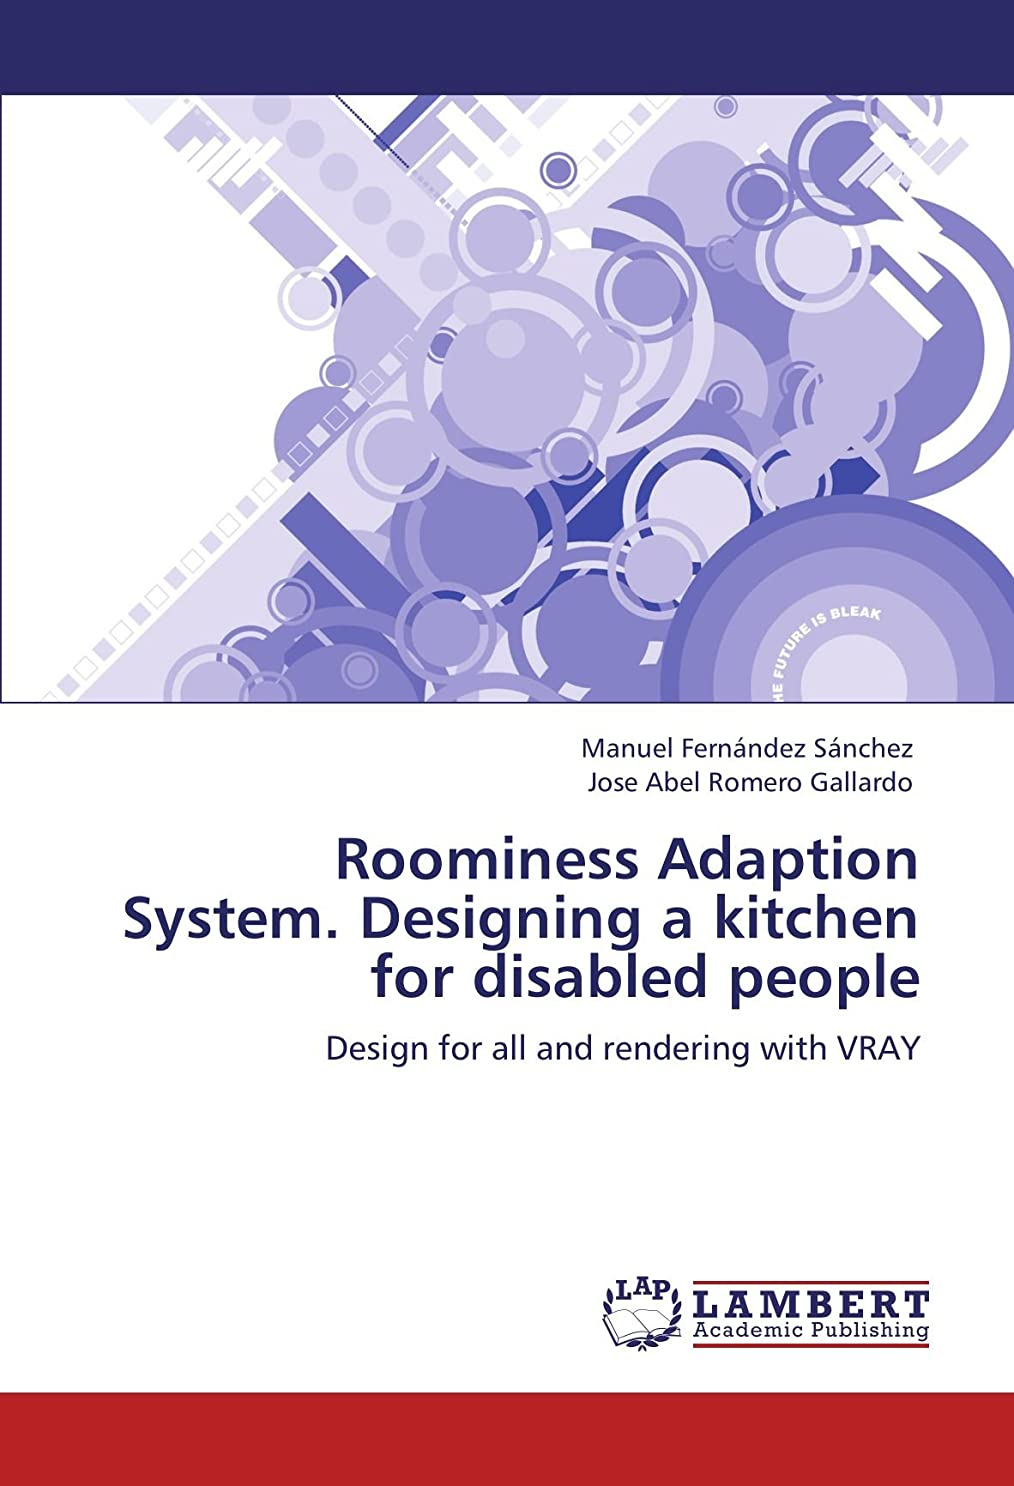 使い込む隠十分ではないRoominess Adaption System. Designing a Kitchen for Disabled People